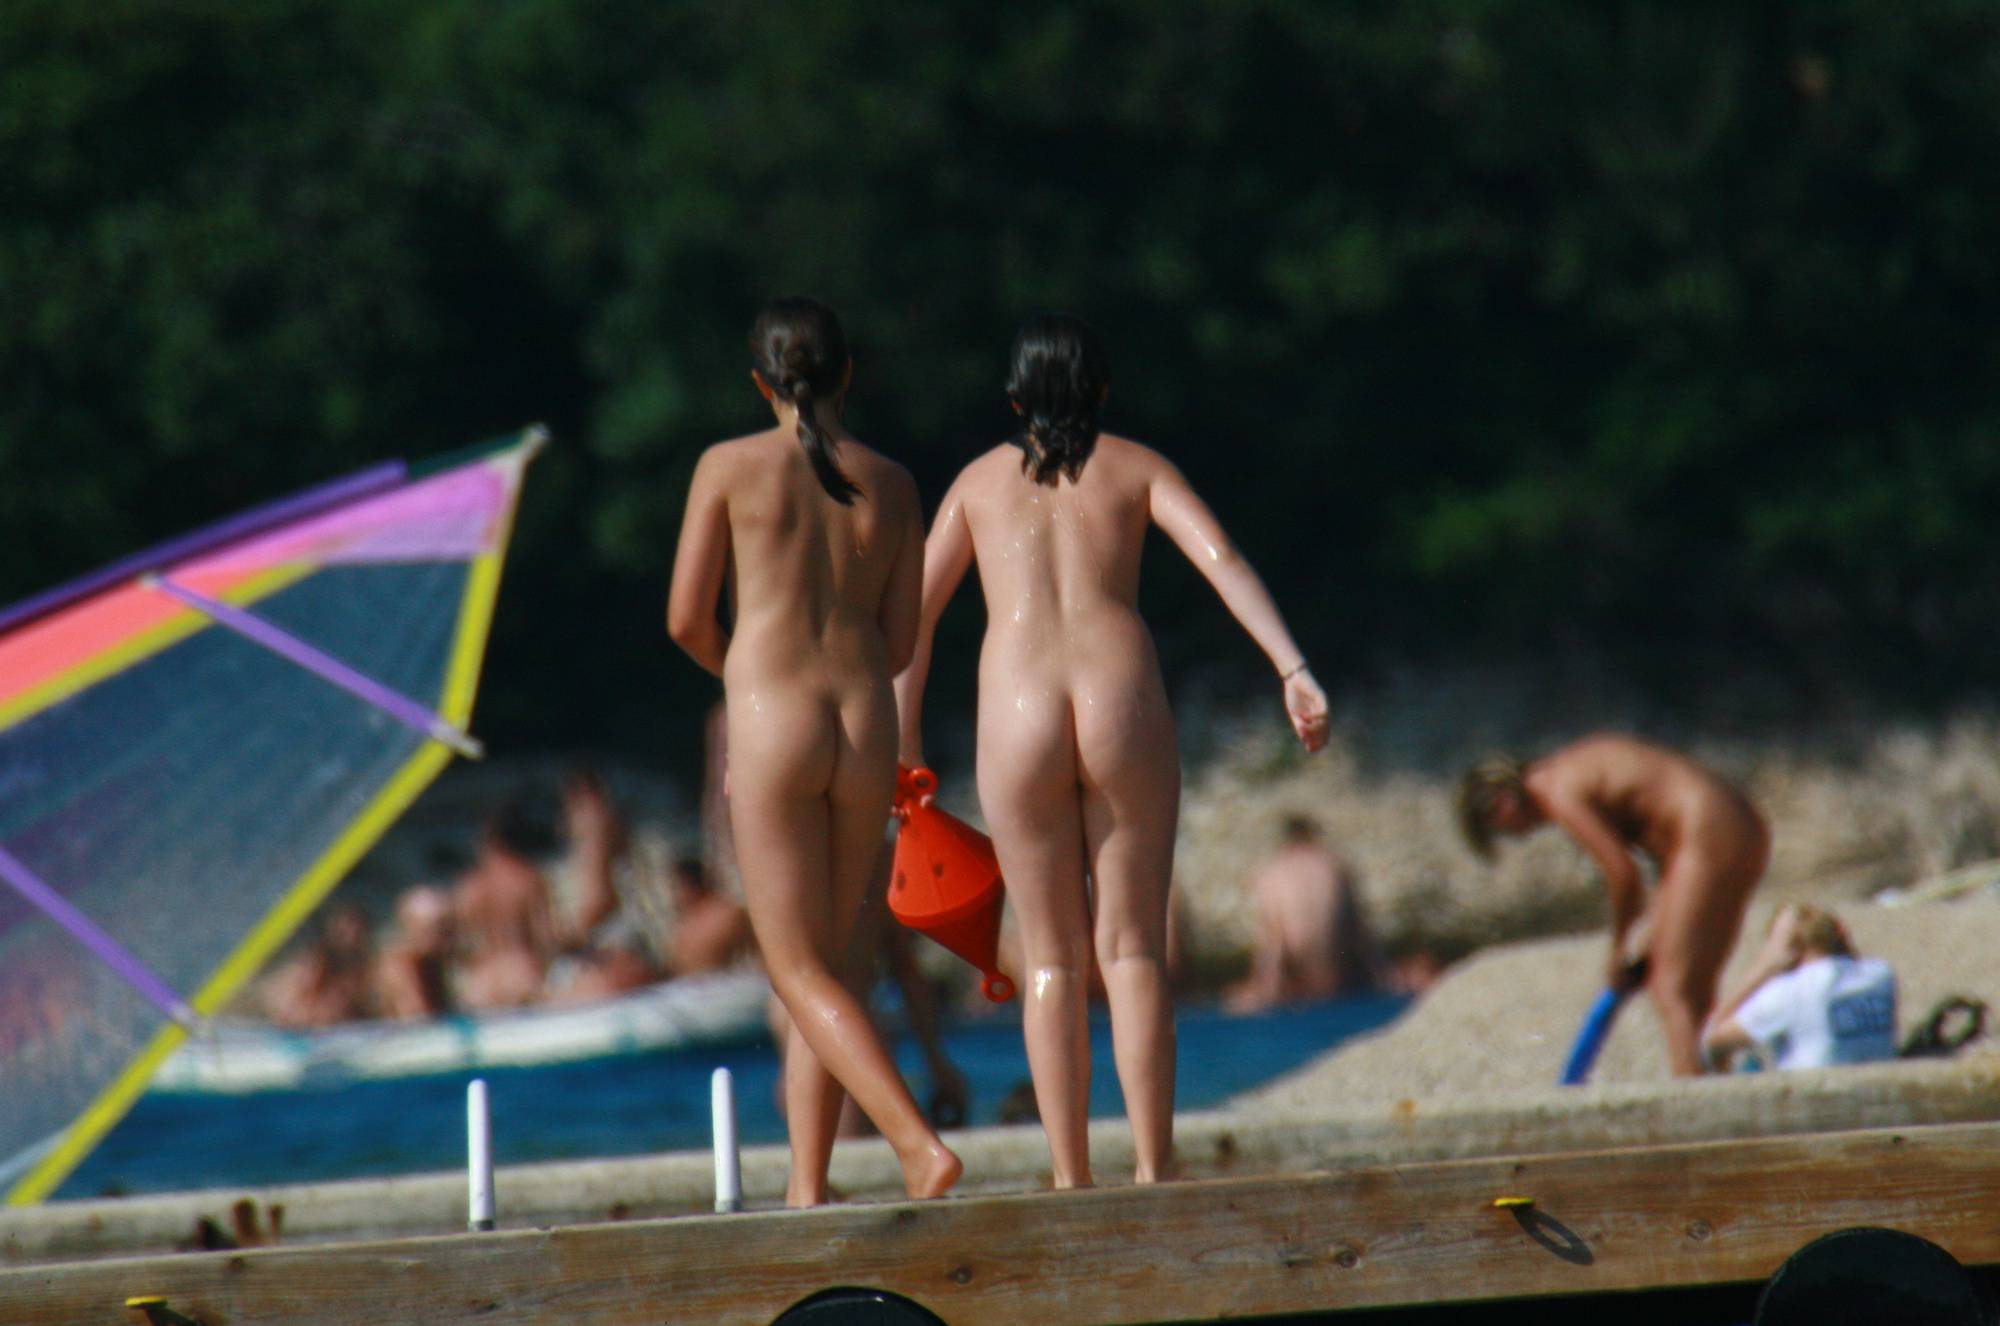 Nudist Pics Wooden Island Freedom - 1